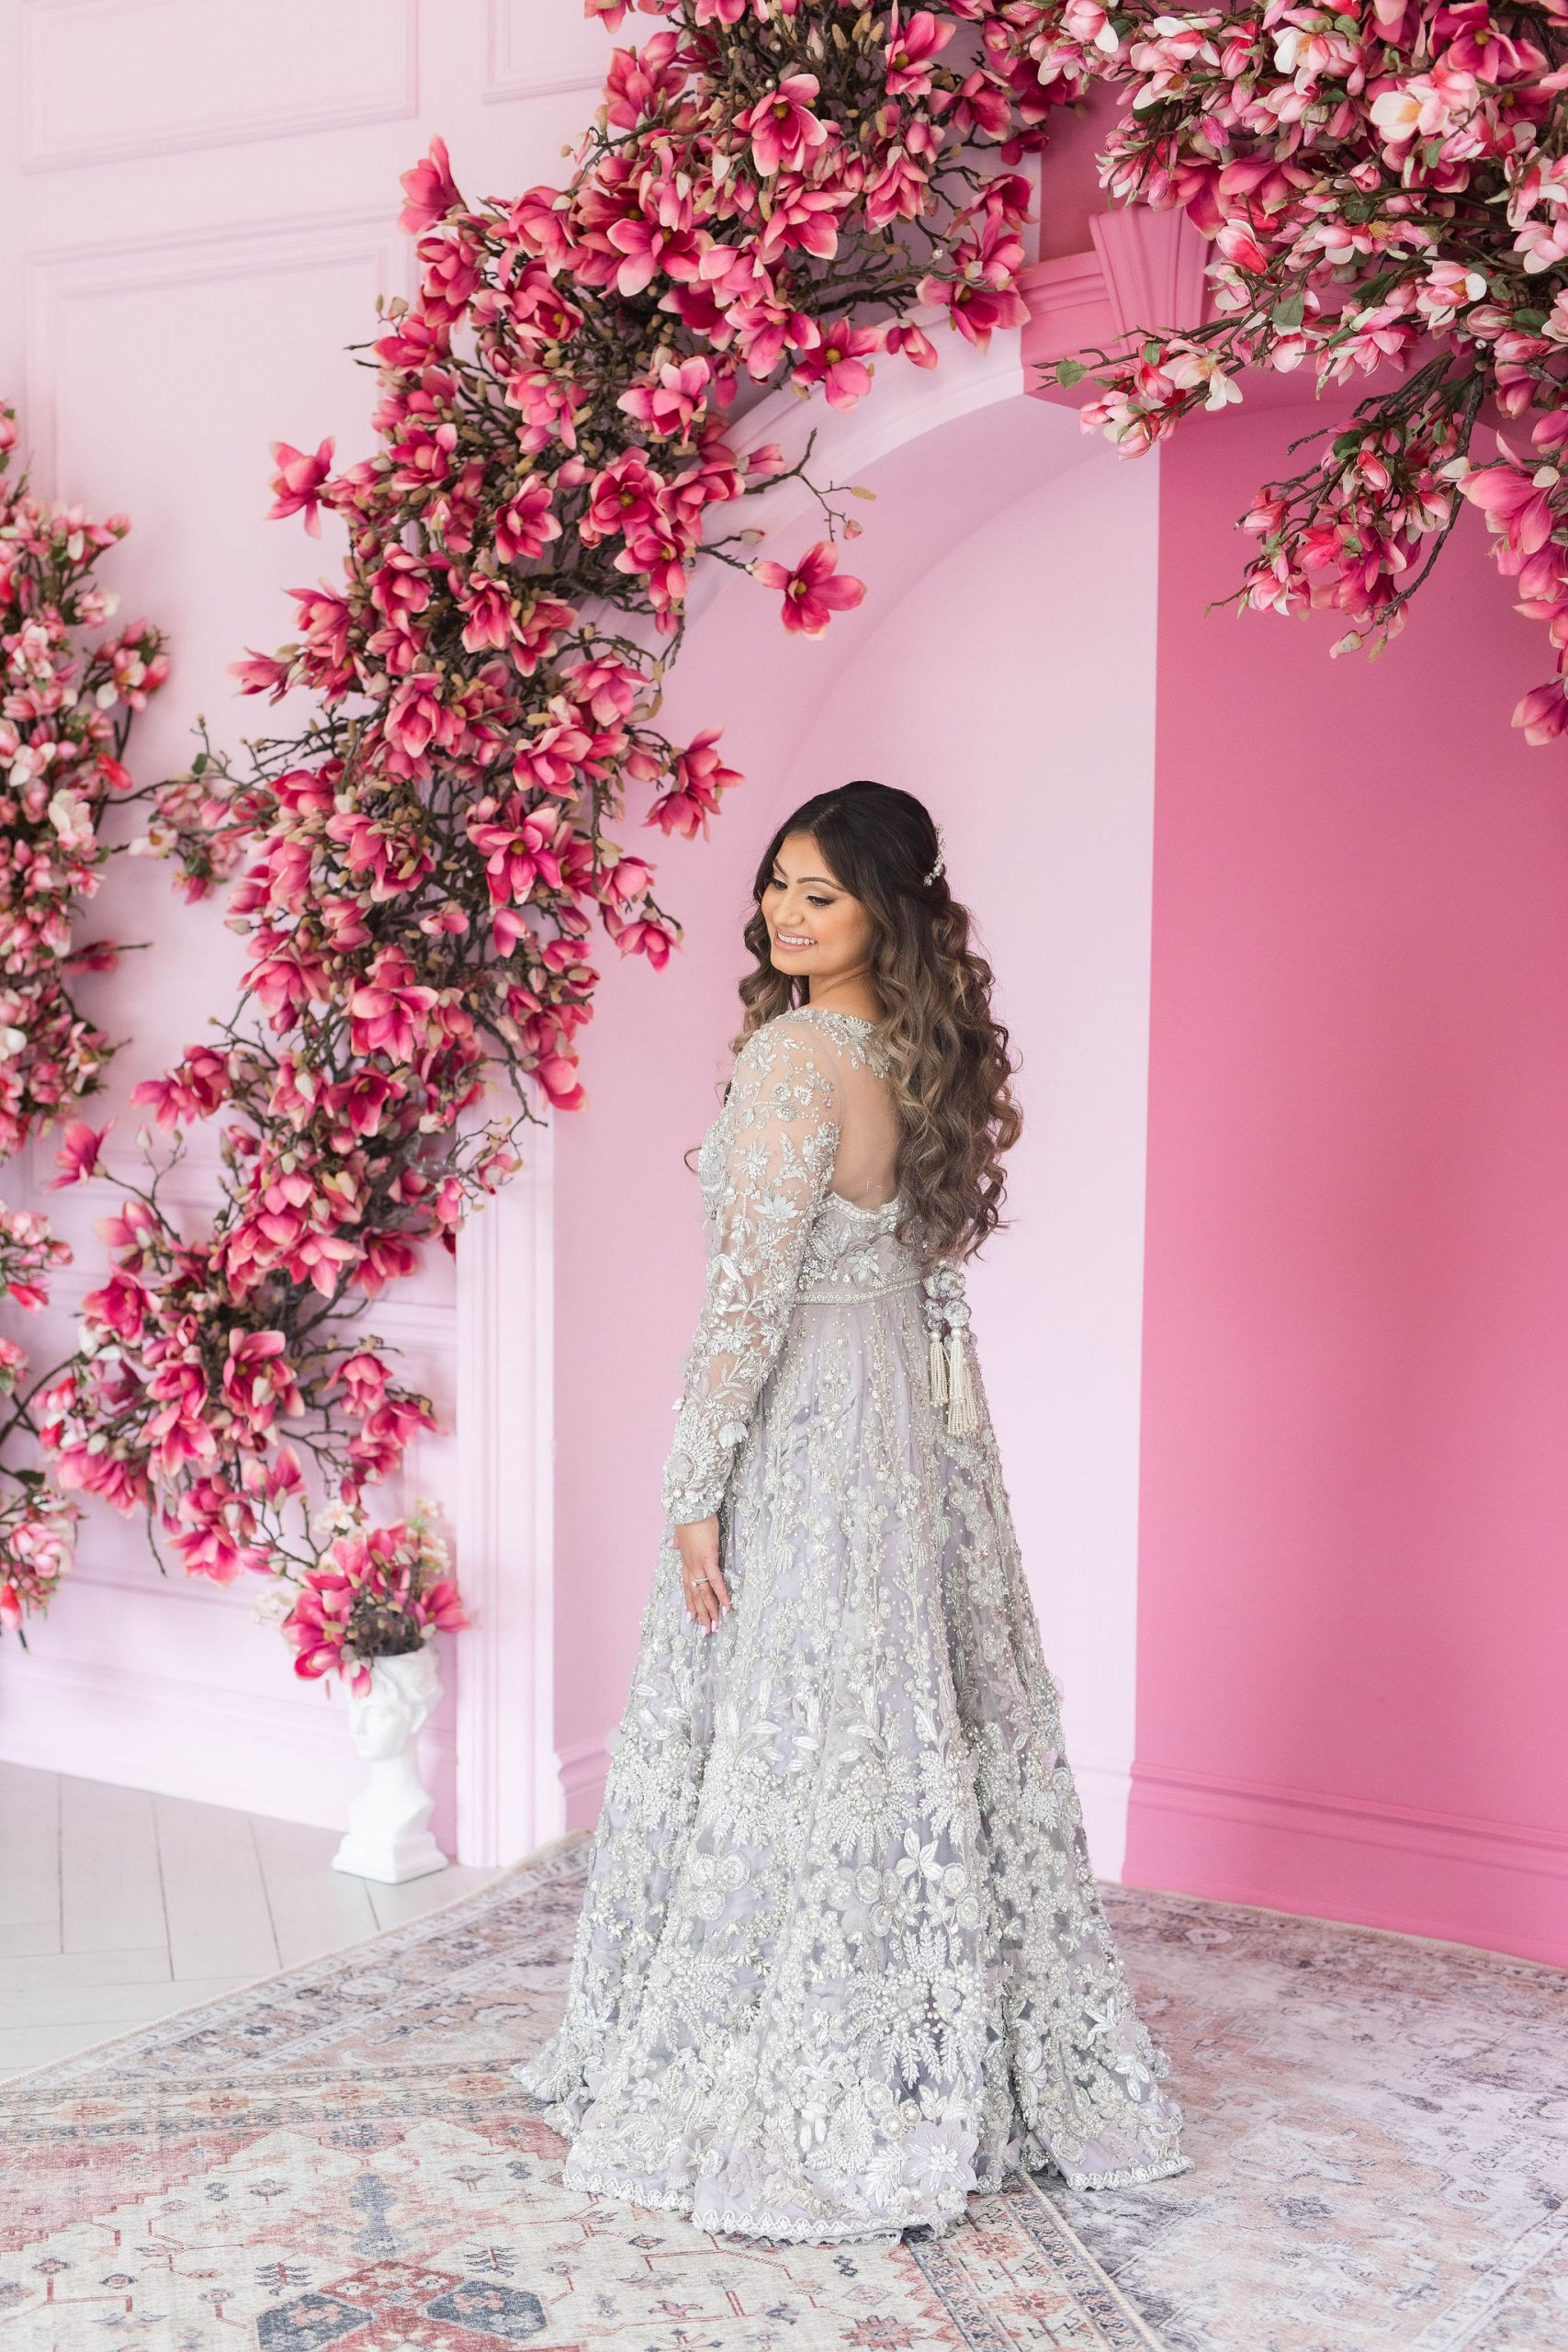 Bride in a traditional dress standing next to a pink arch covered with flowers